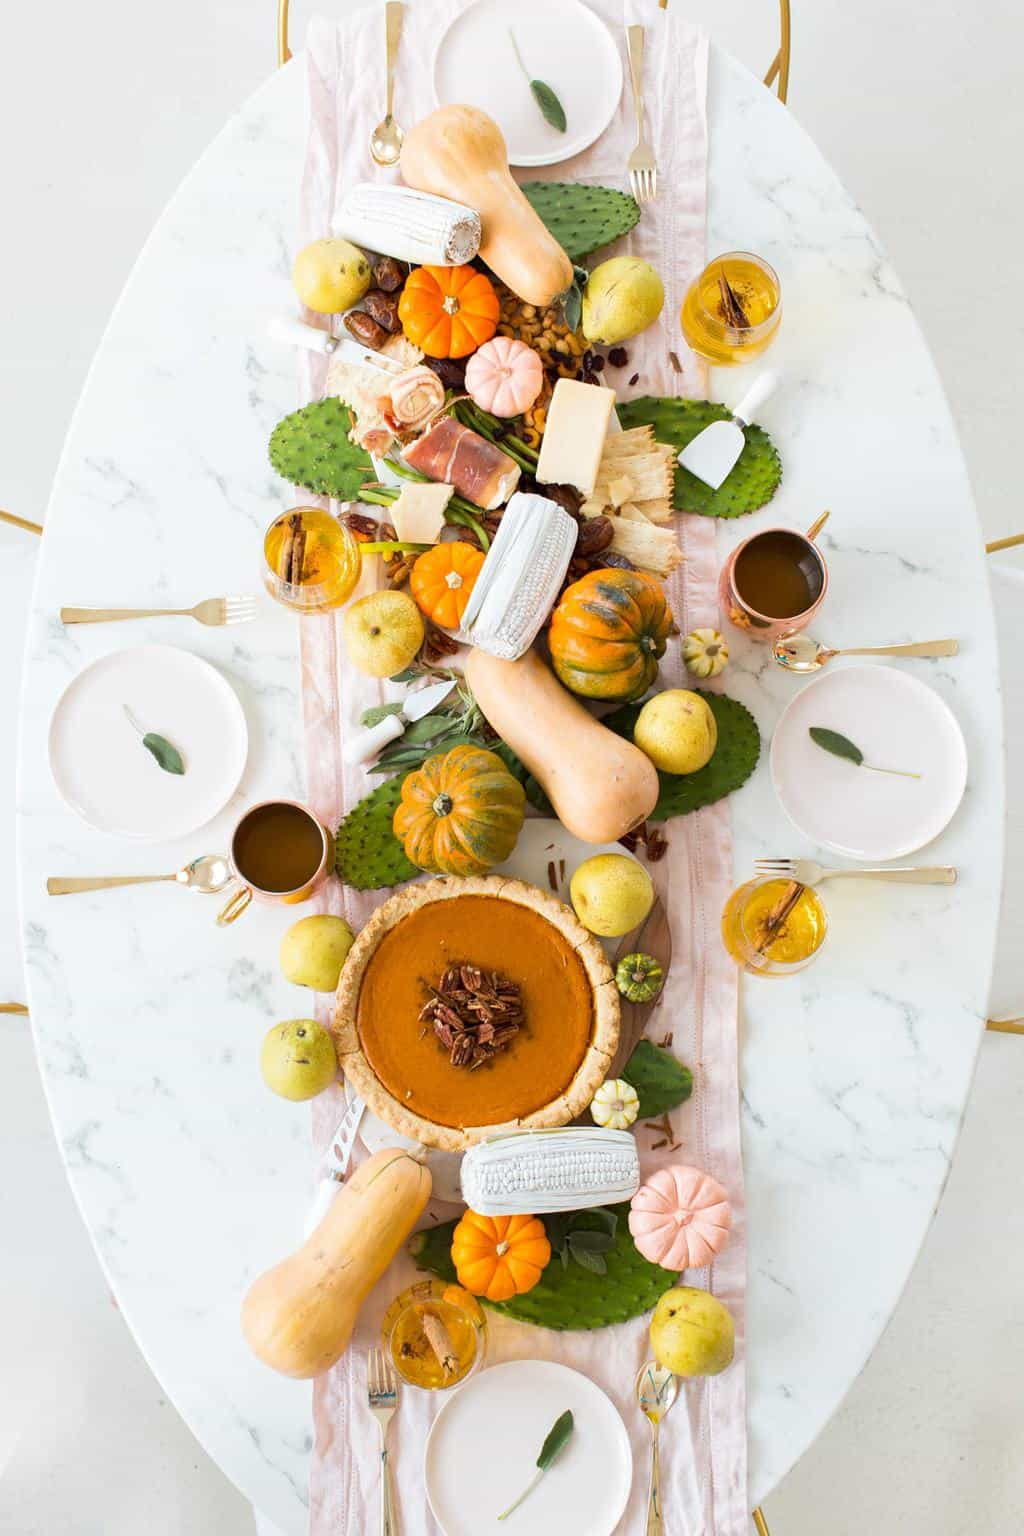 Thanksgiving Table Setting Tdea + Spiced Pumpkin Cider Recipe by top Houston Lifestyle blogger Ashley Rose of Sugar and Cloth